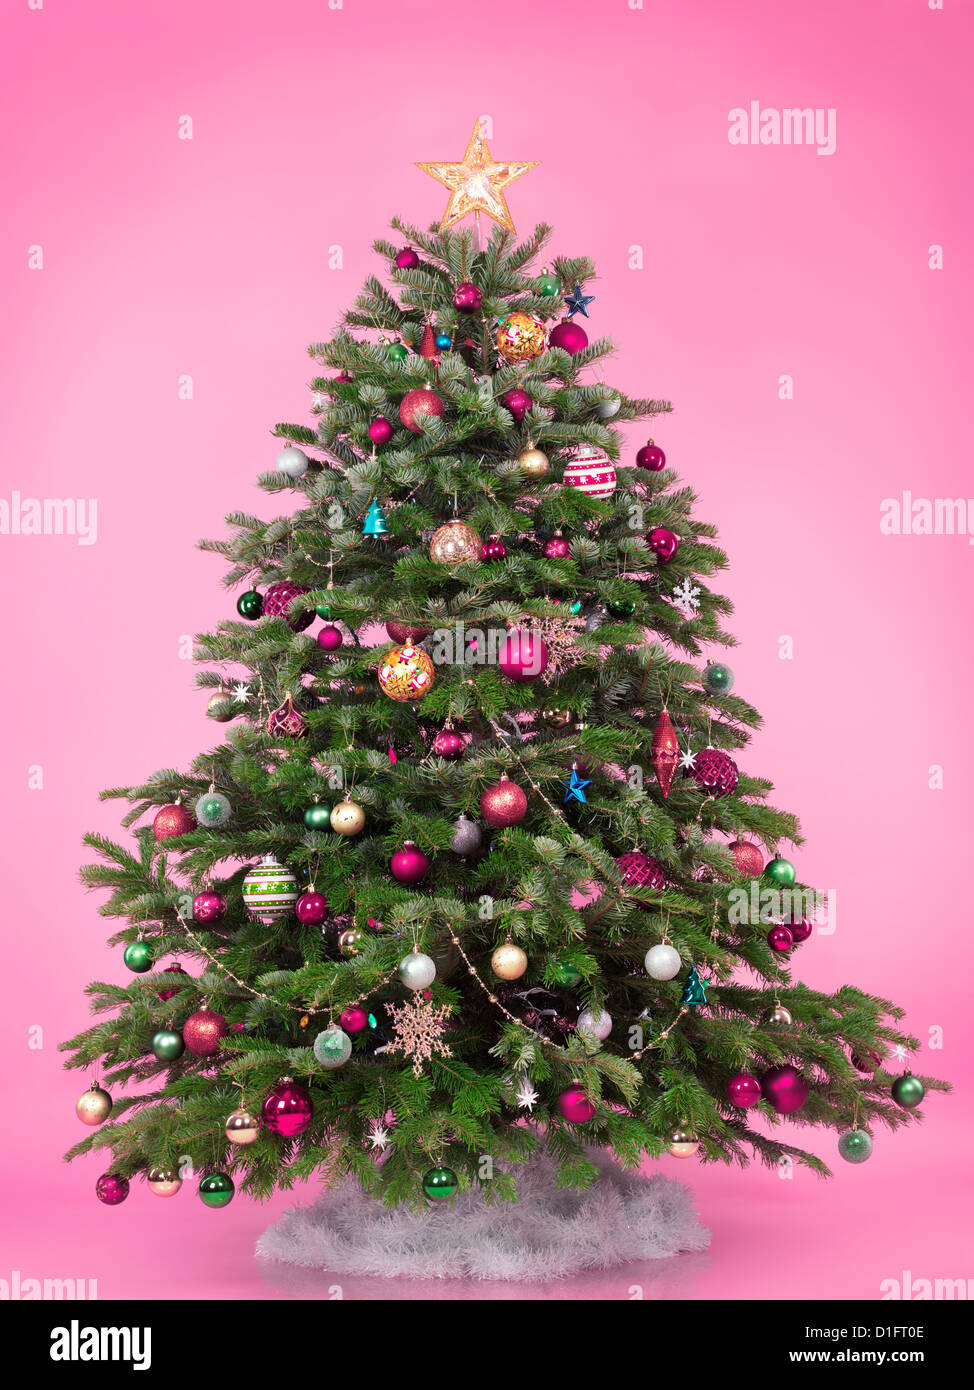 Decorated Christmas Tree isolé sur fond rose mignon Photo Stock